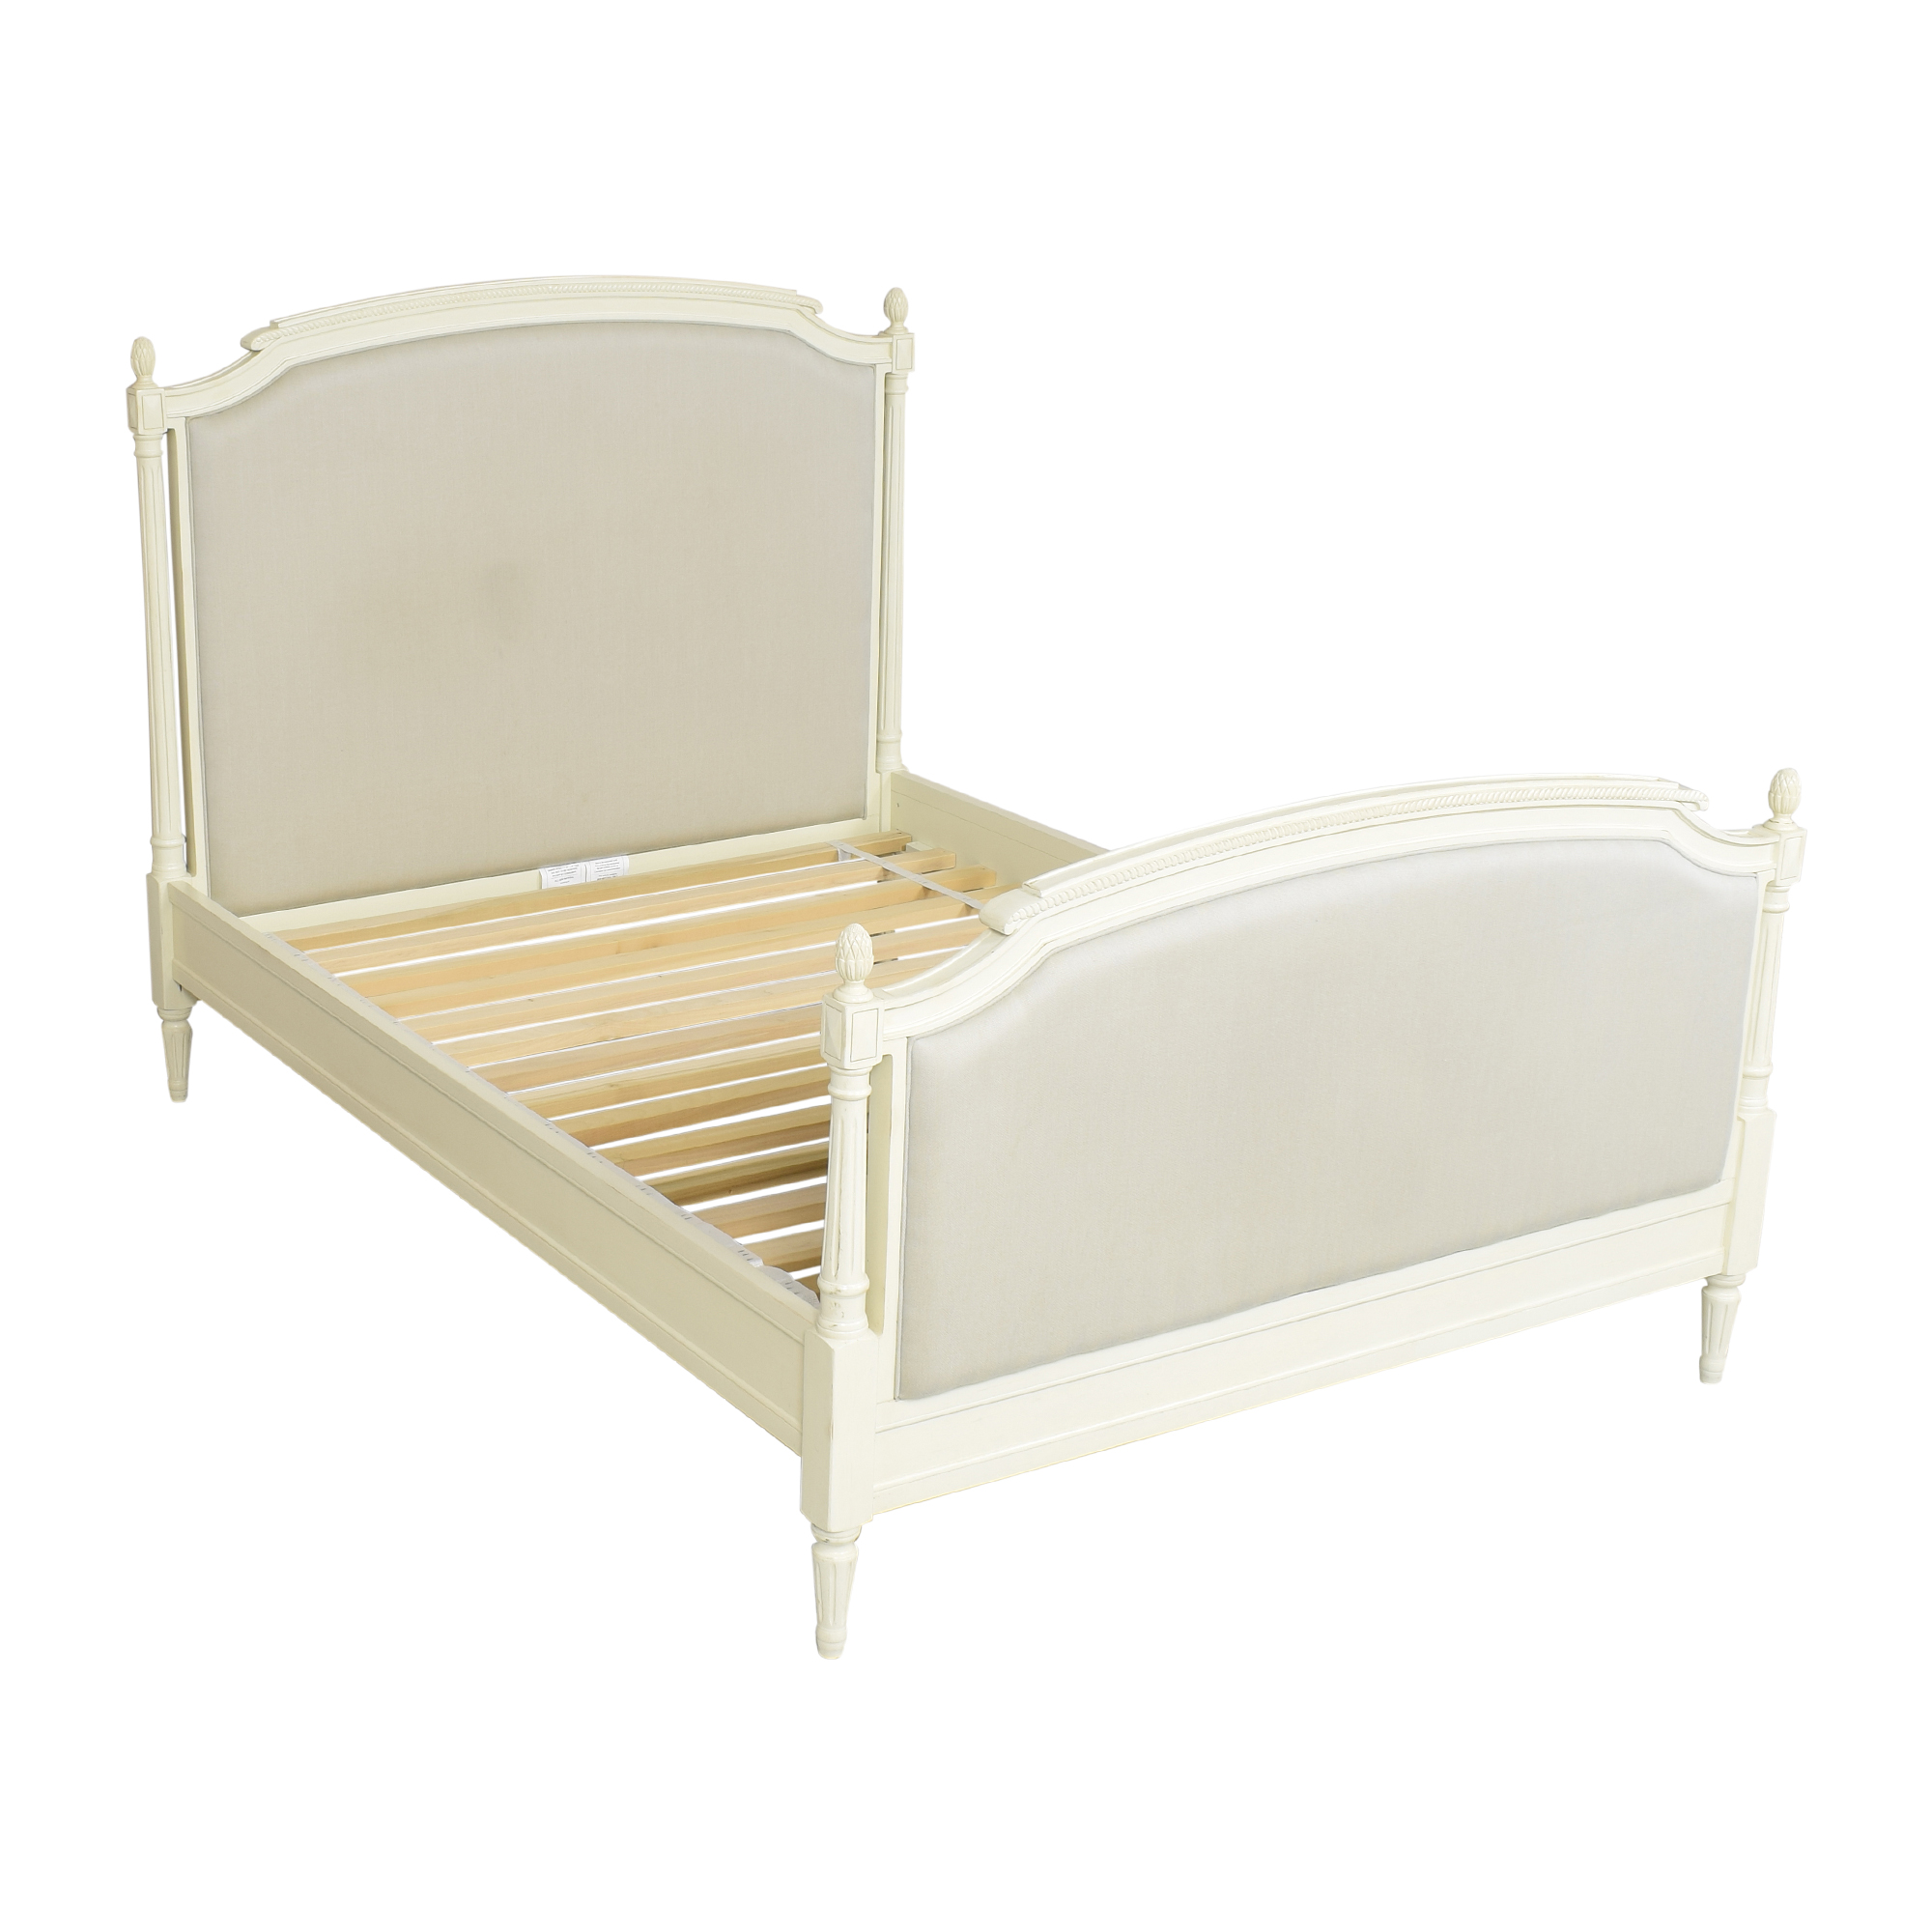 Pottery Barn Kids Pottery Barn Kids Darcy Full Bed ct